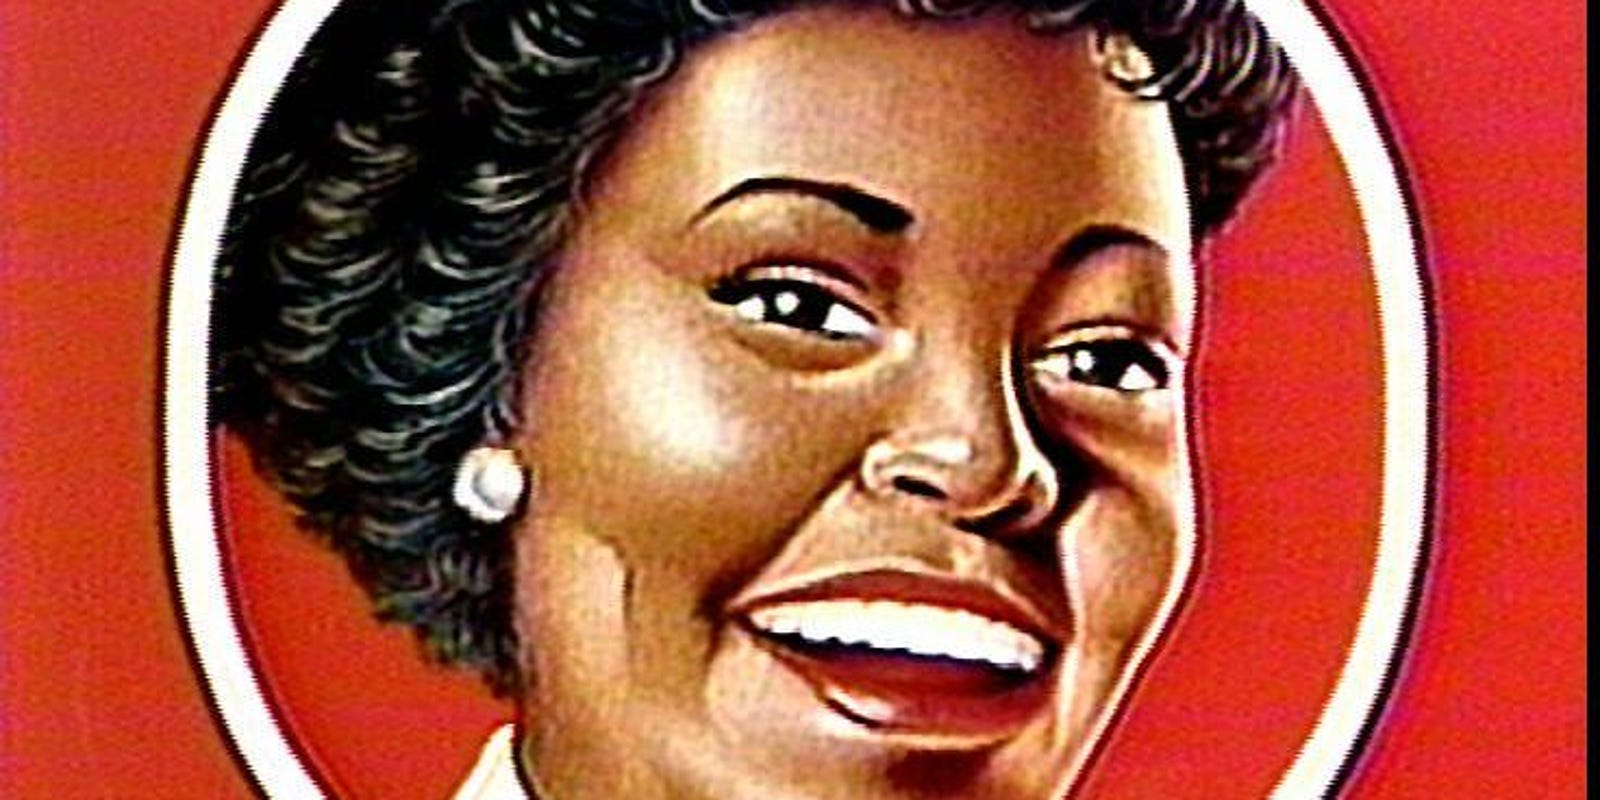 Reports: Aunt Jemima brand is changing its name and removing the namesake Black character